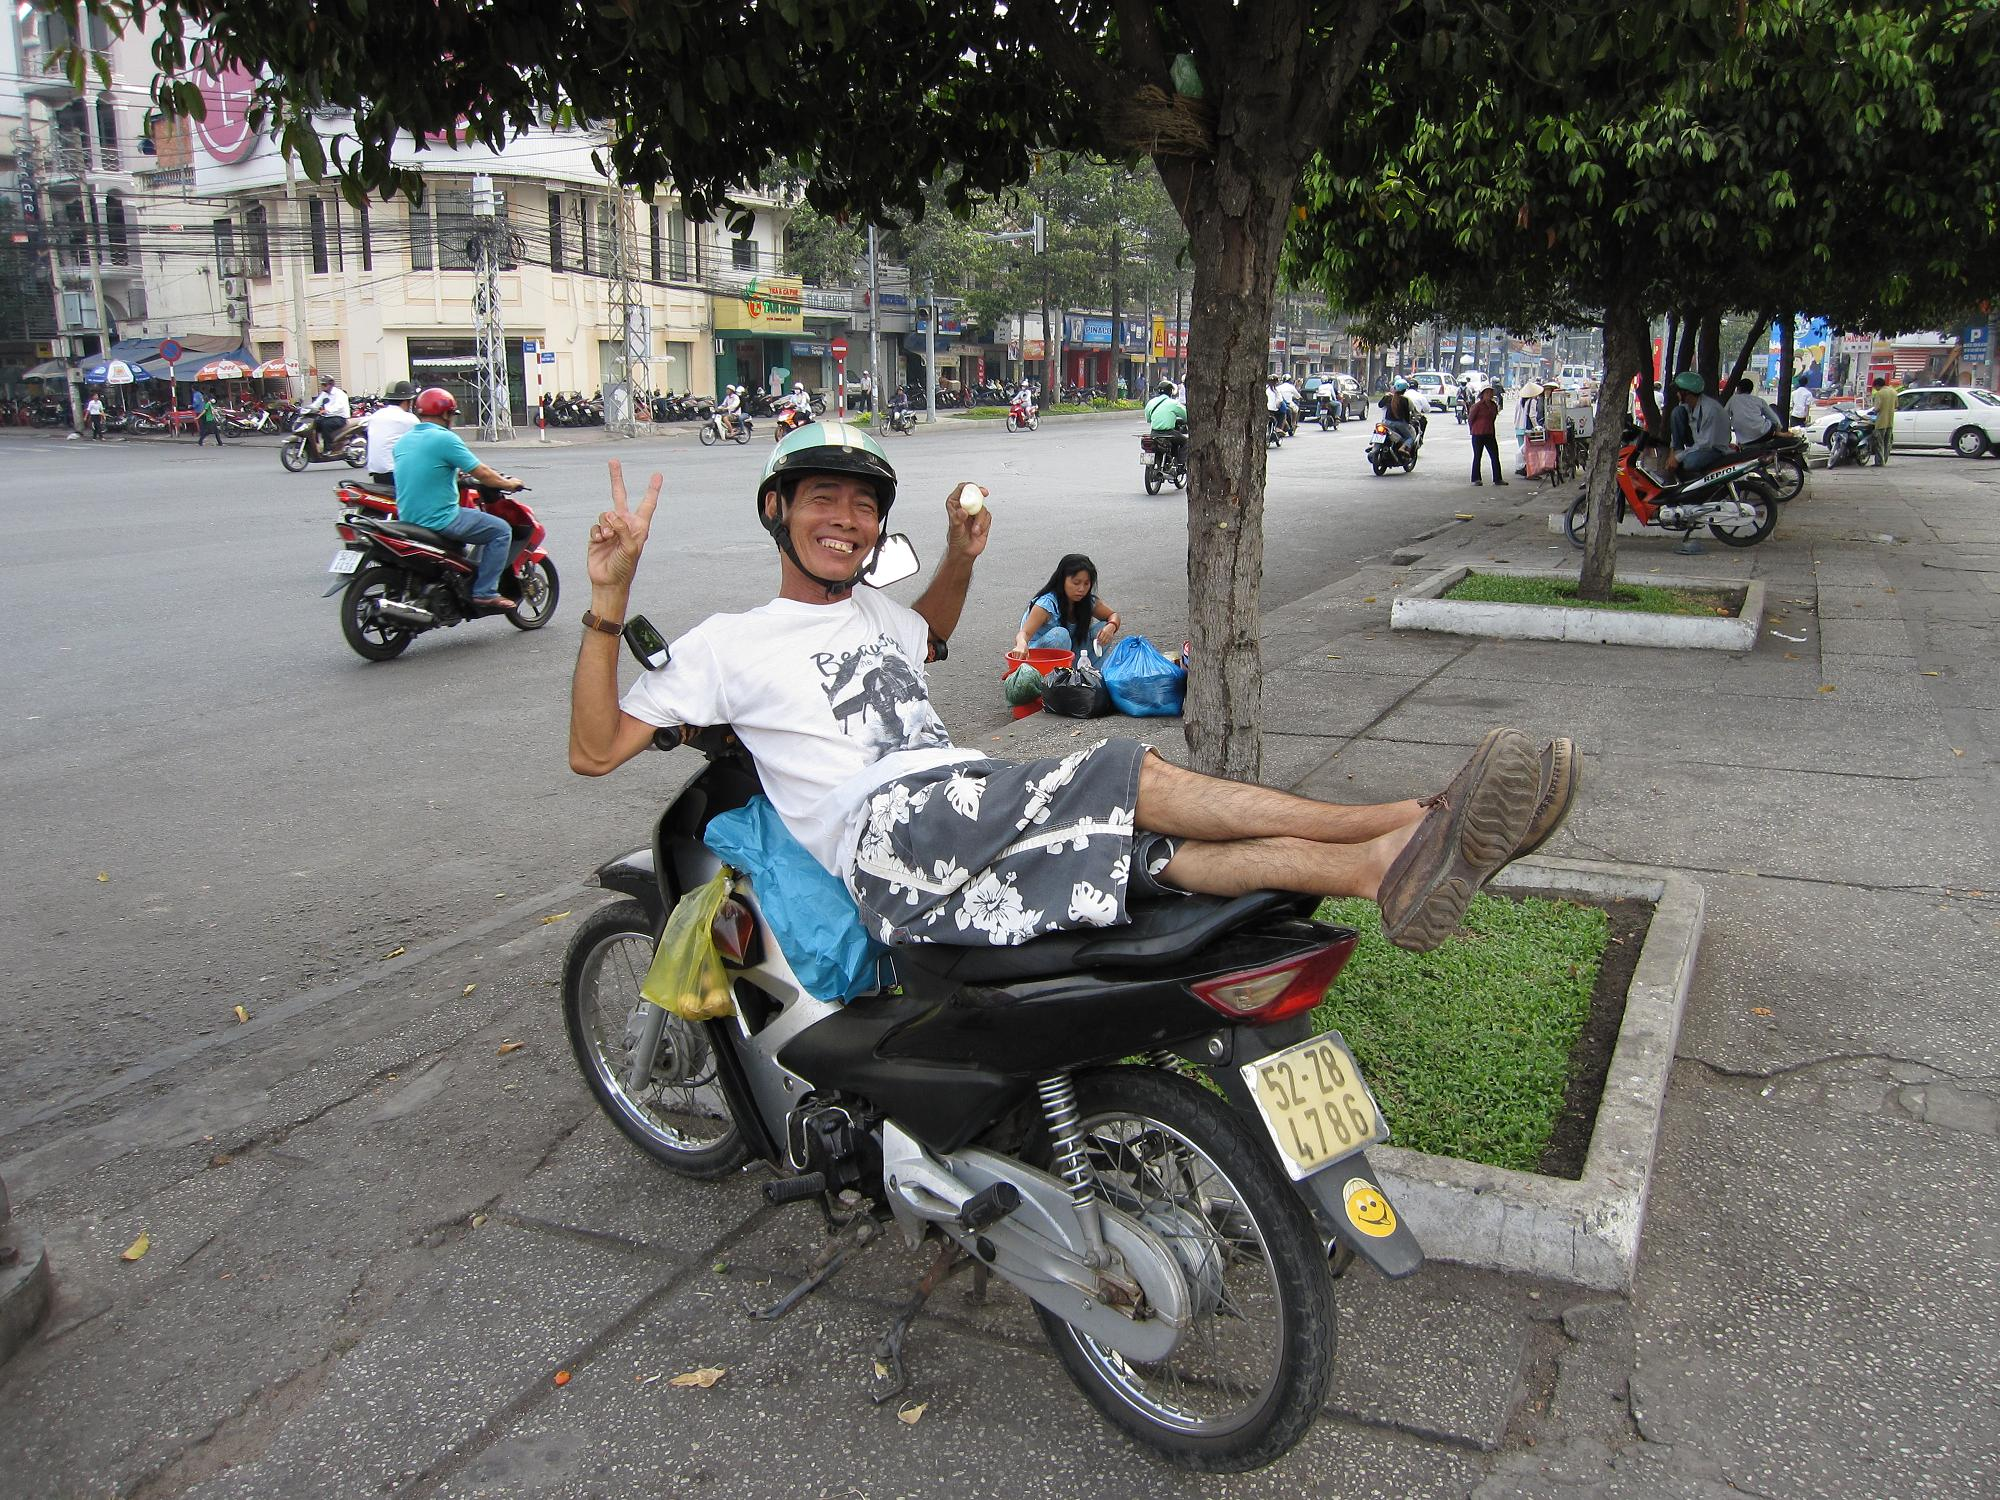 Camera Craziness and Motorcycle Madness in Ho Chi Minh City, Vietnam